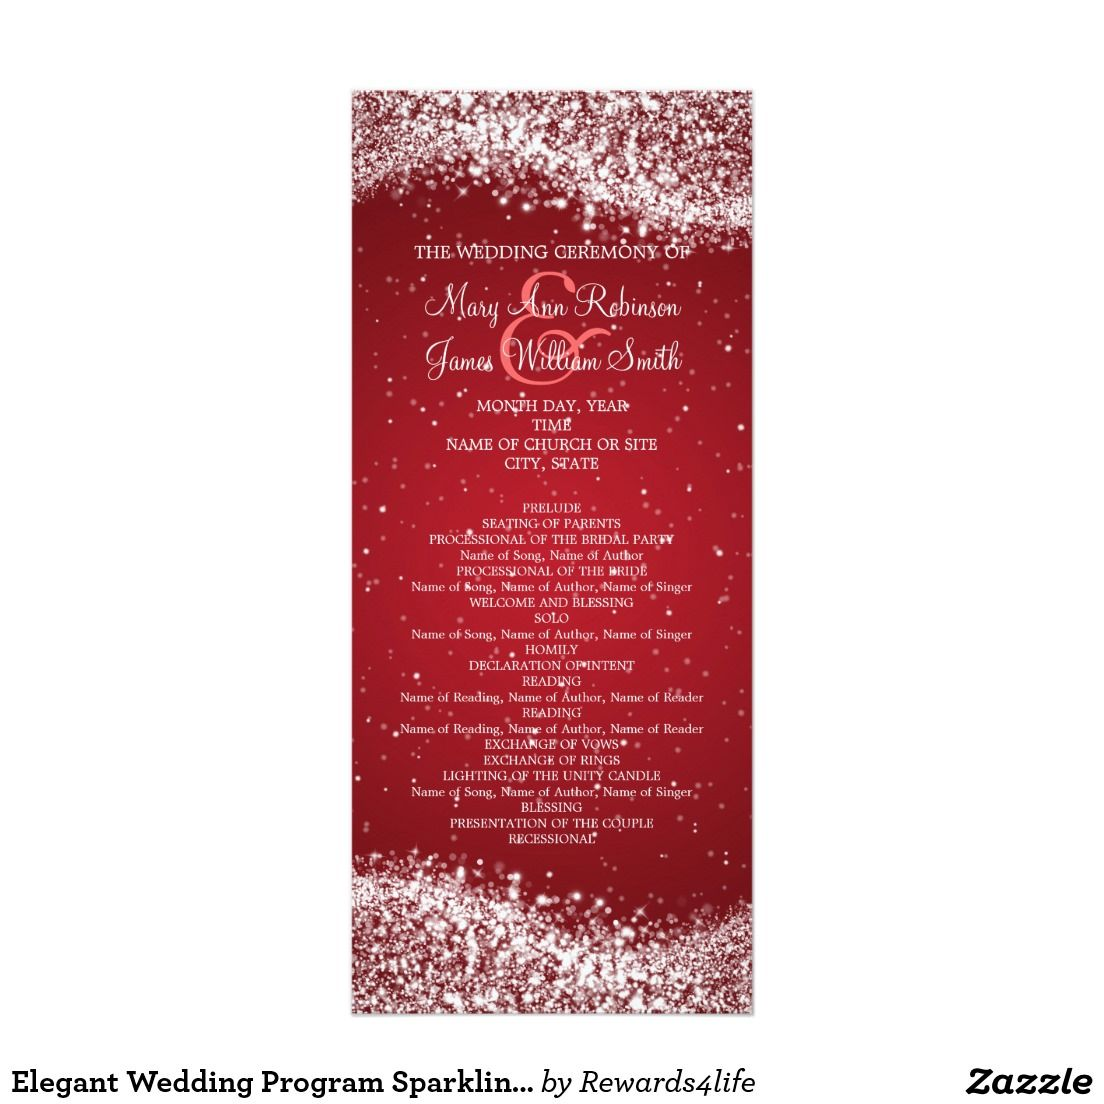 Elegant Wedding Program Sparkling Wave Red | Pinterest | Wedding ...